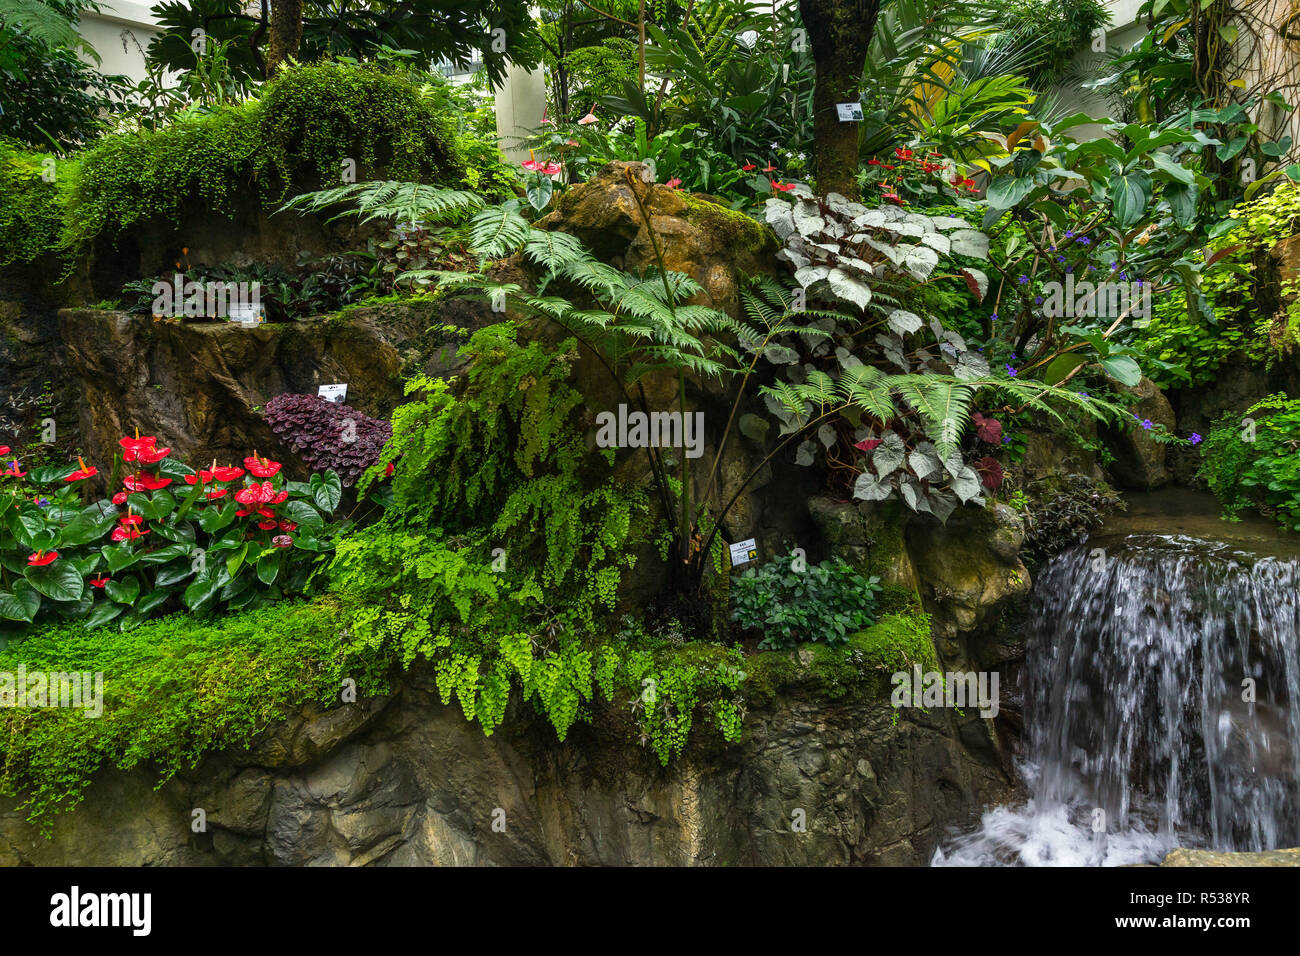 Forsgate Conservatory at the Hong Kong Park showing tropical plants and jungle foliage in the Humid Plant House - Stock Image